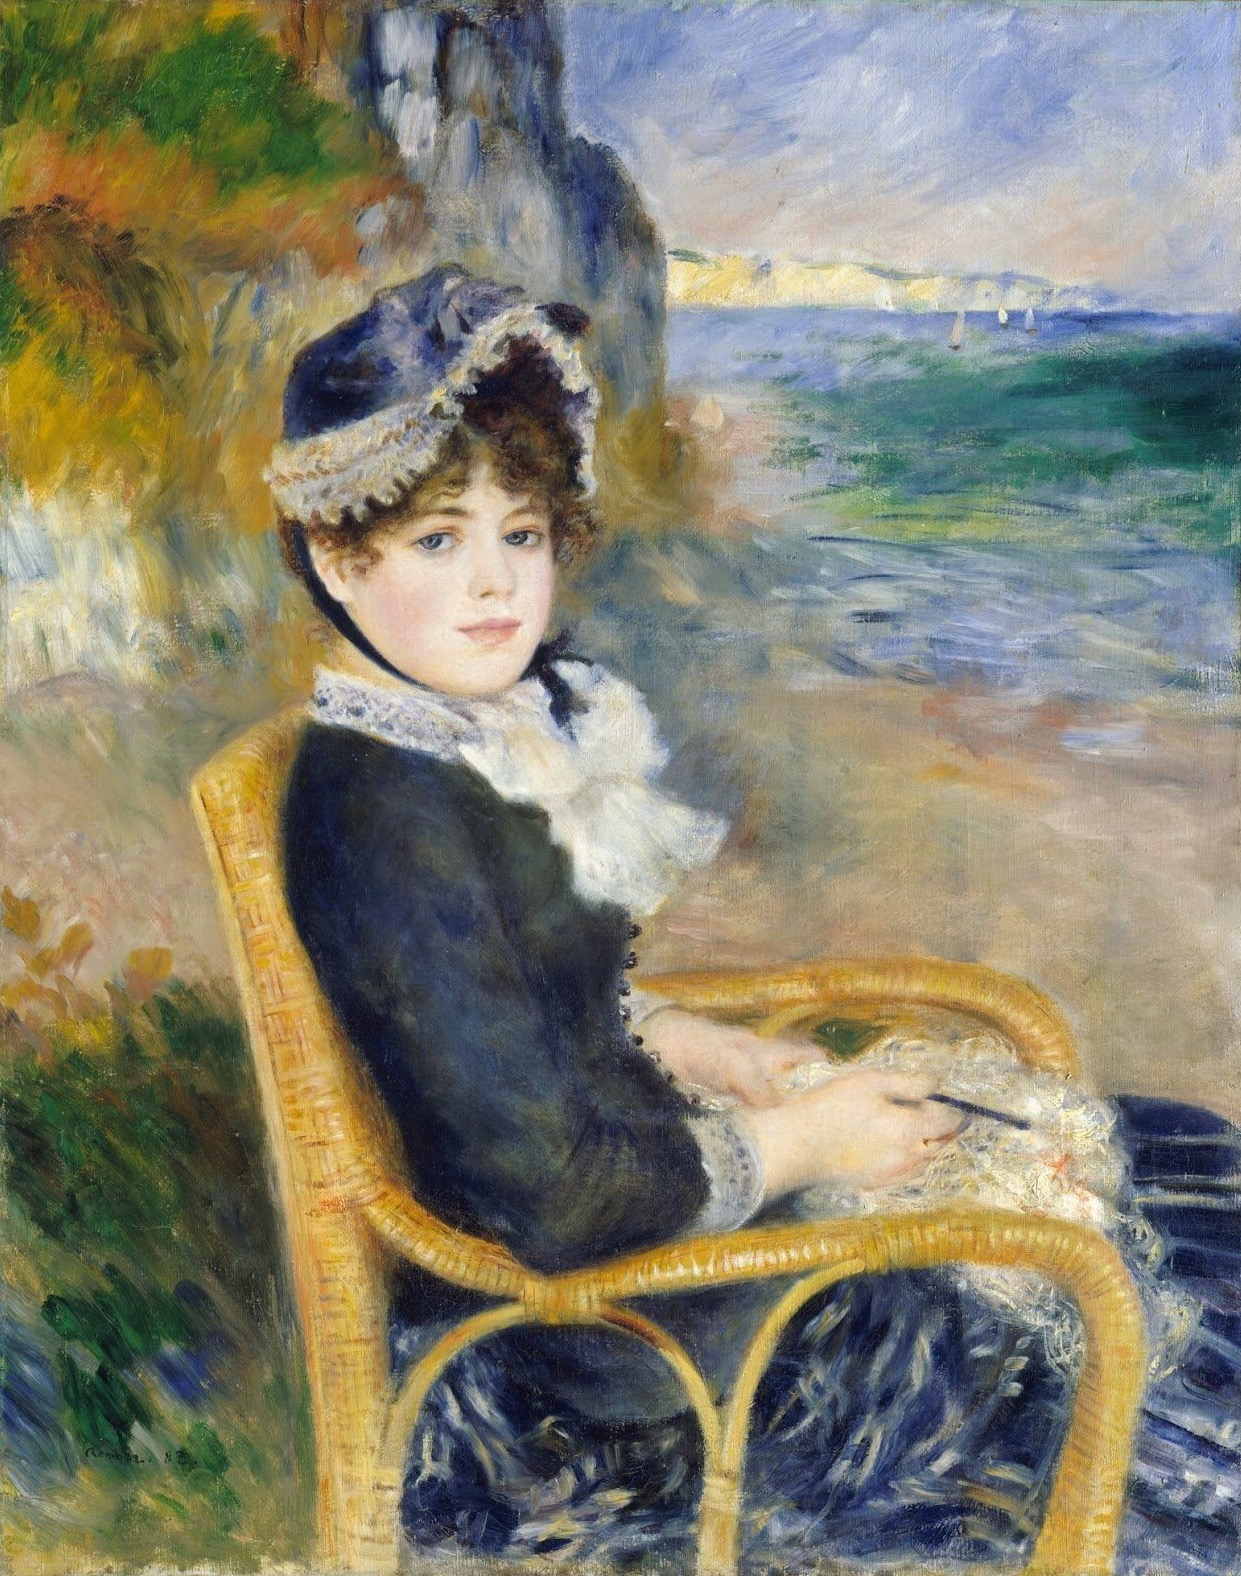 By the Seashore, by Pierre-Auguste Renoir, 1883